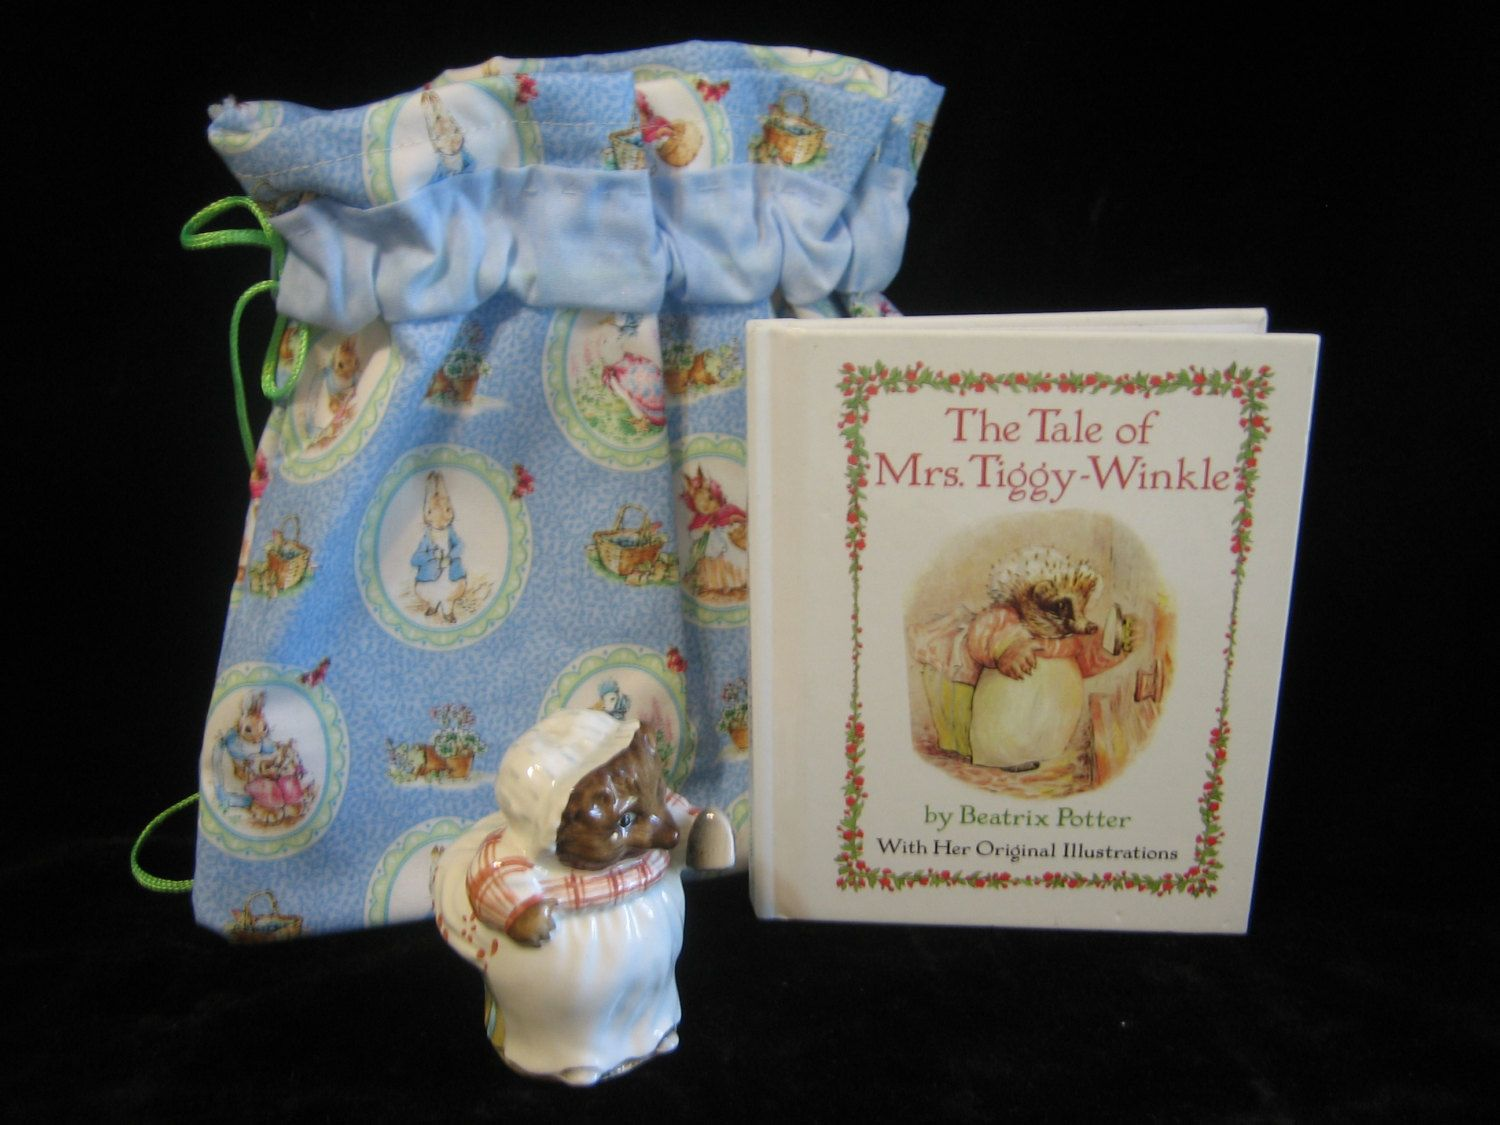 Beatrix Potter Libros Vintage Mrs Tiggy Winkle Figurine Book And Bookbag By